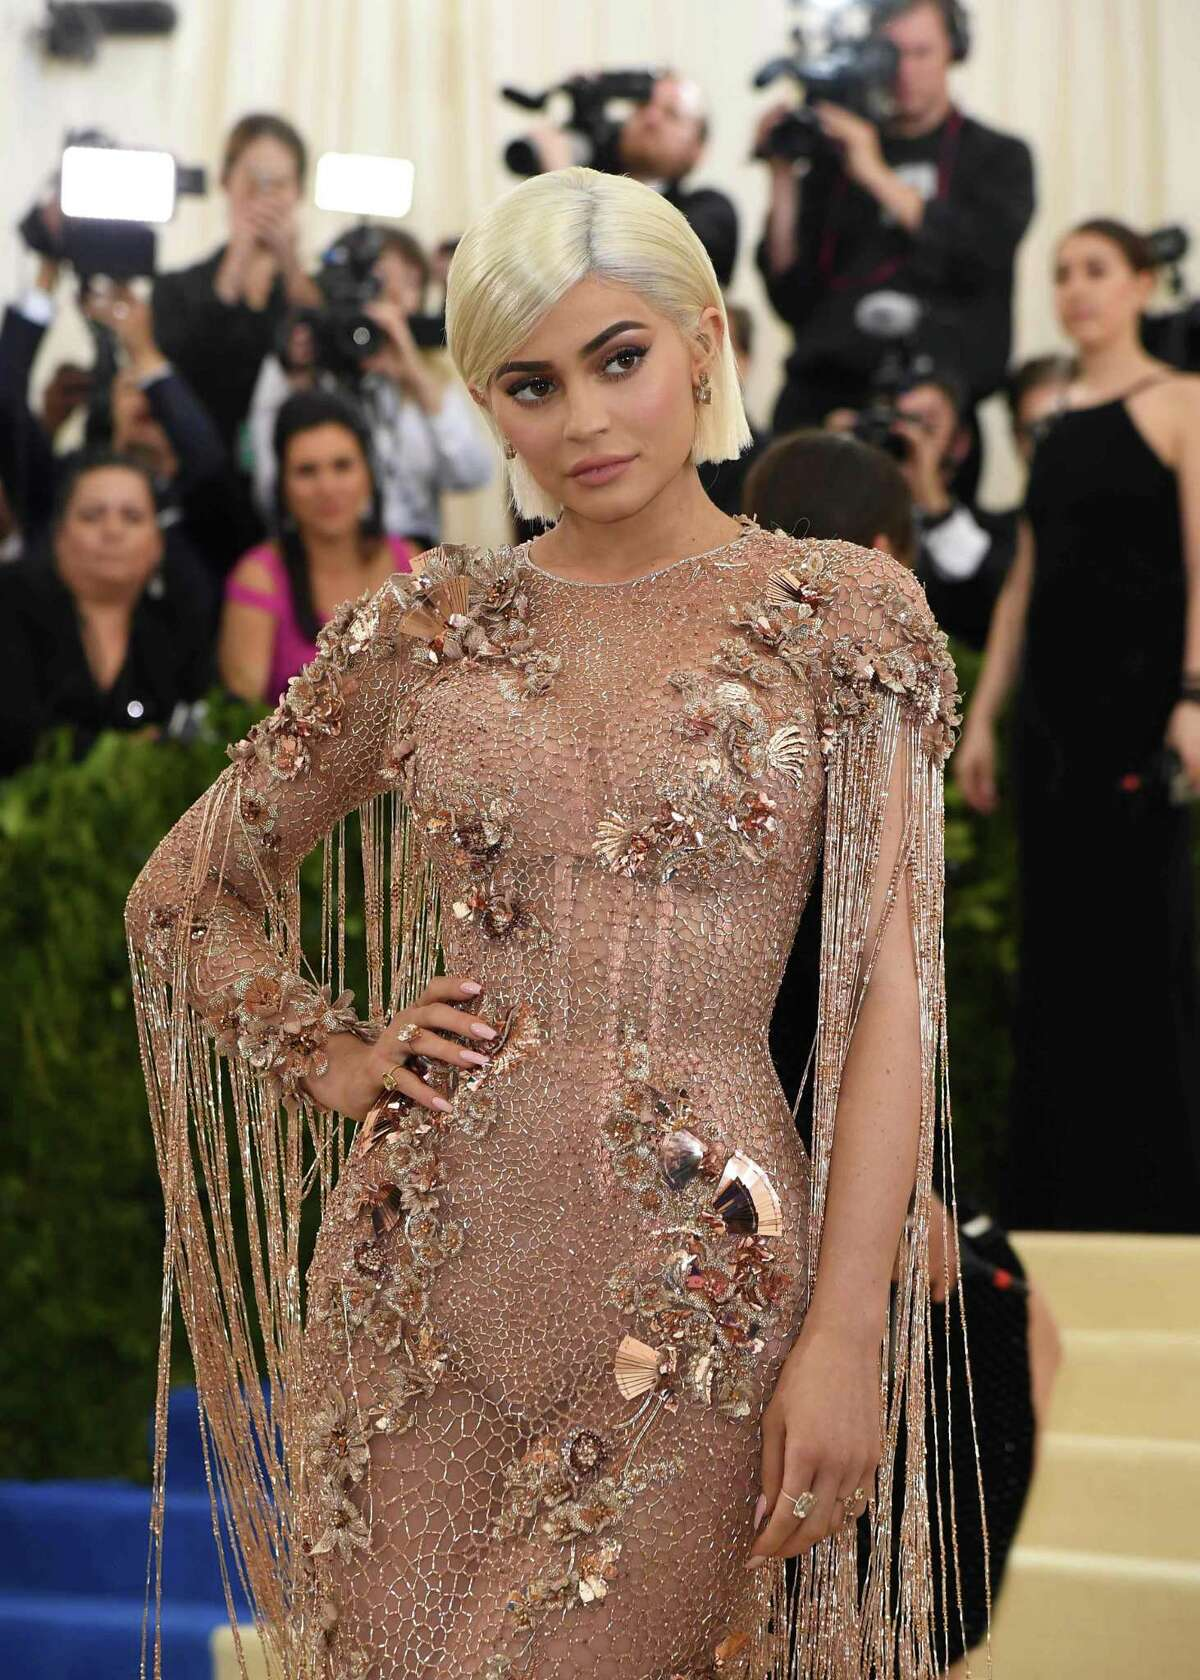 Kylie Jenner arrives for the Costume Institute Benefit on May 1, 2017, at the Metropolitan Museum of Art in New York. / AFP PHOTO / ANGELA WEISSANGELA WEISS/AFP/Getty Images ORG XMIT: The Metro